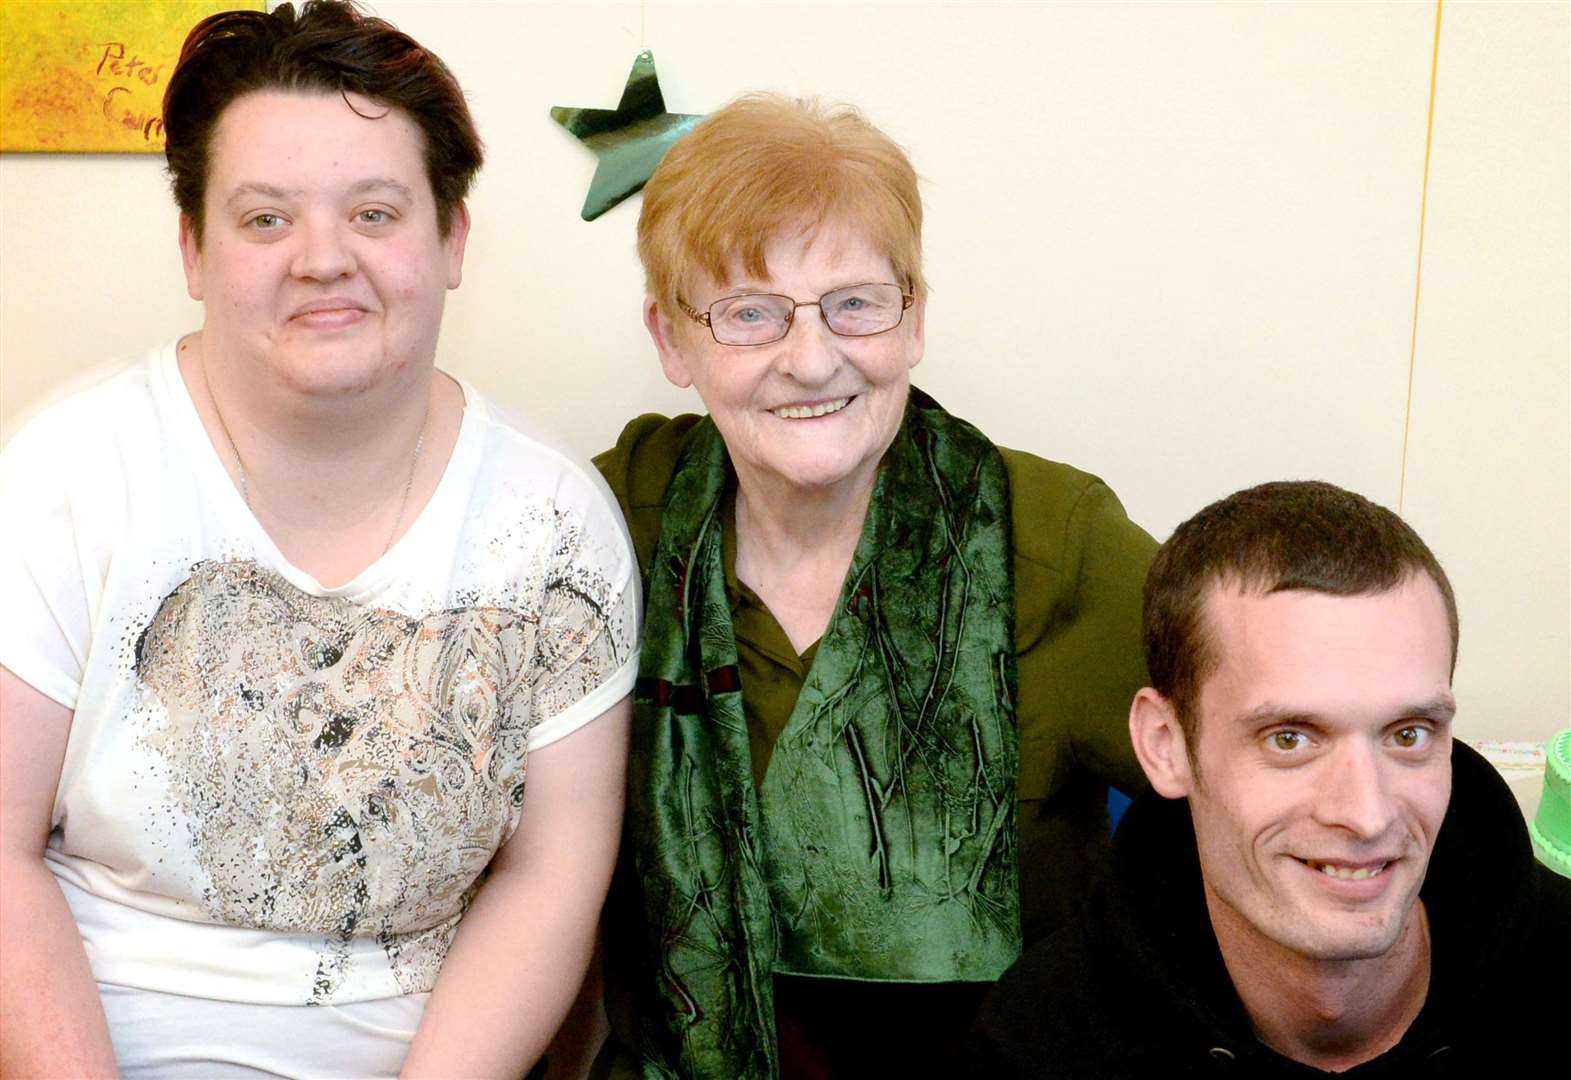 The 'wee woman' with a big heart